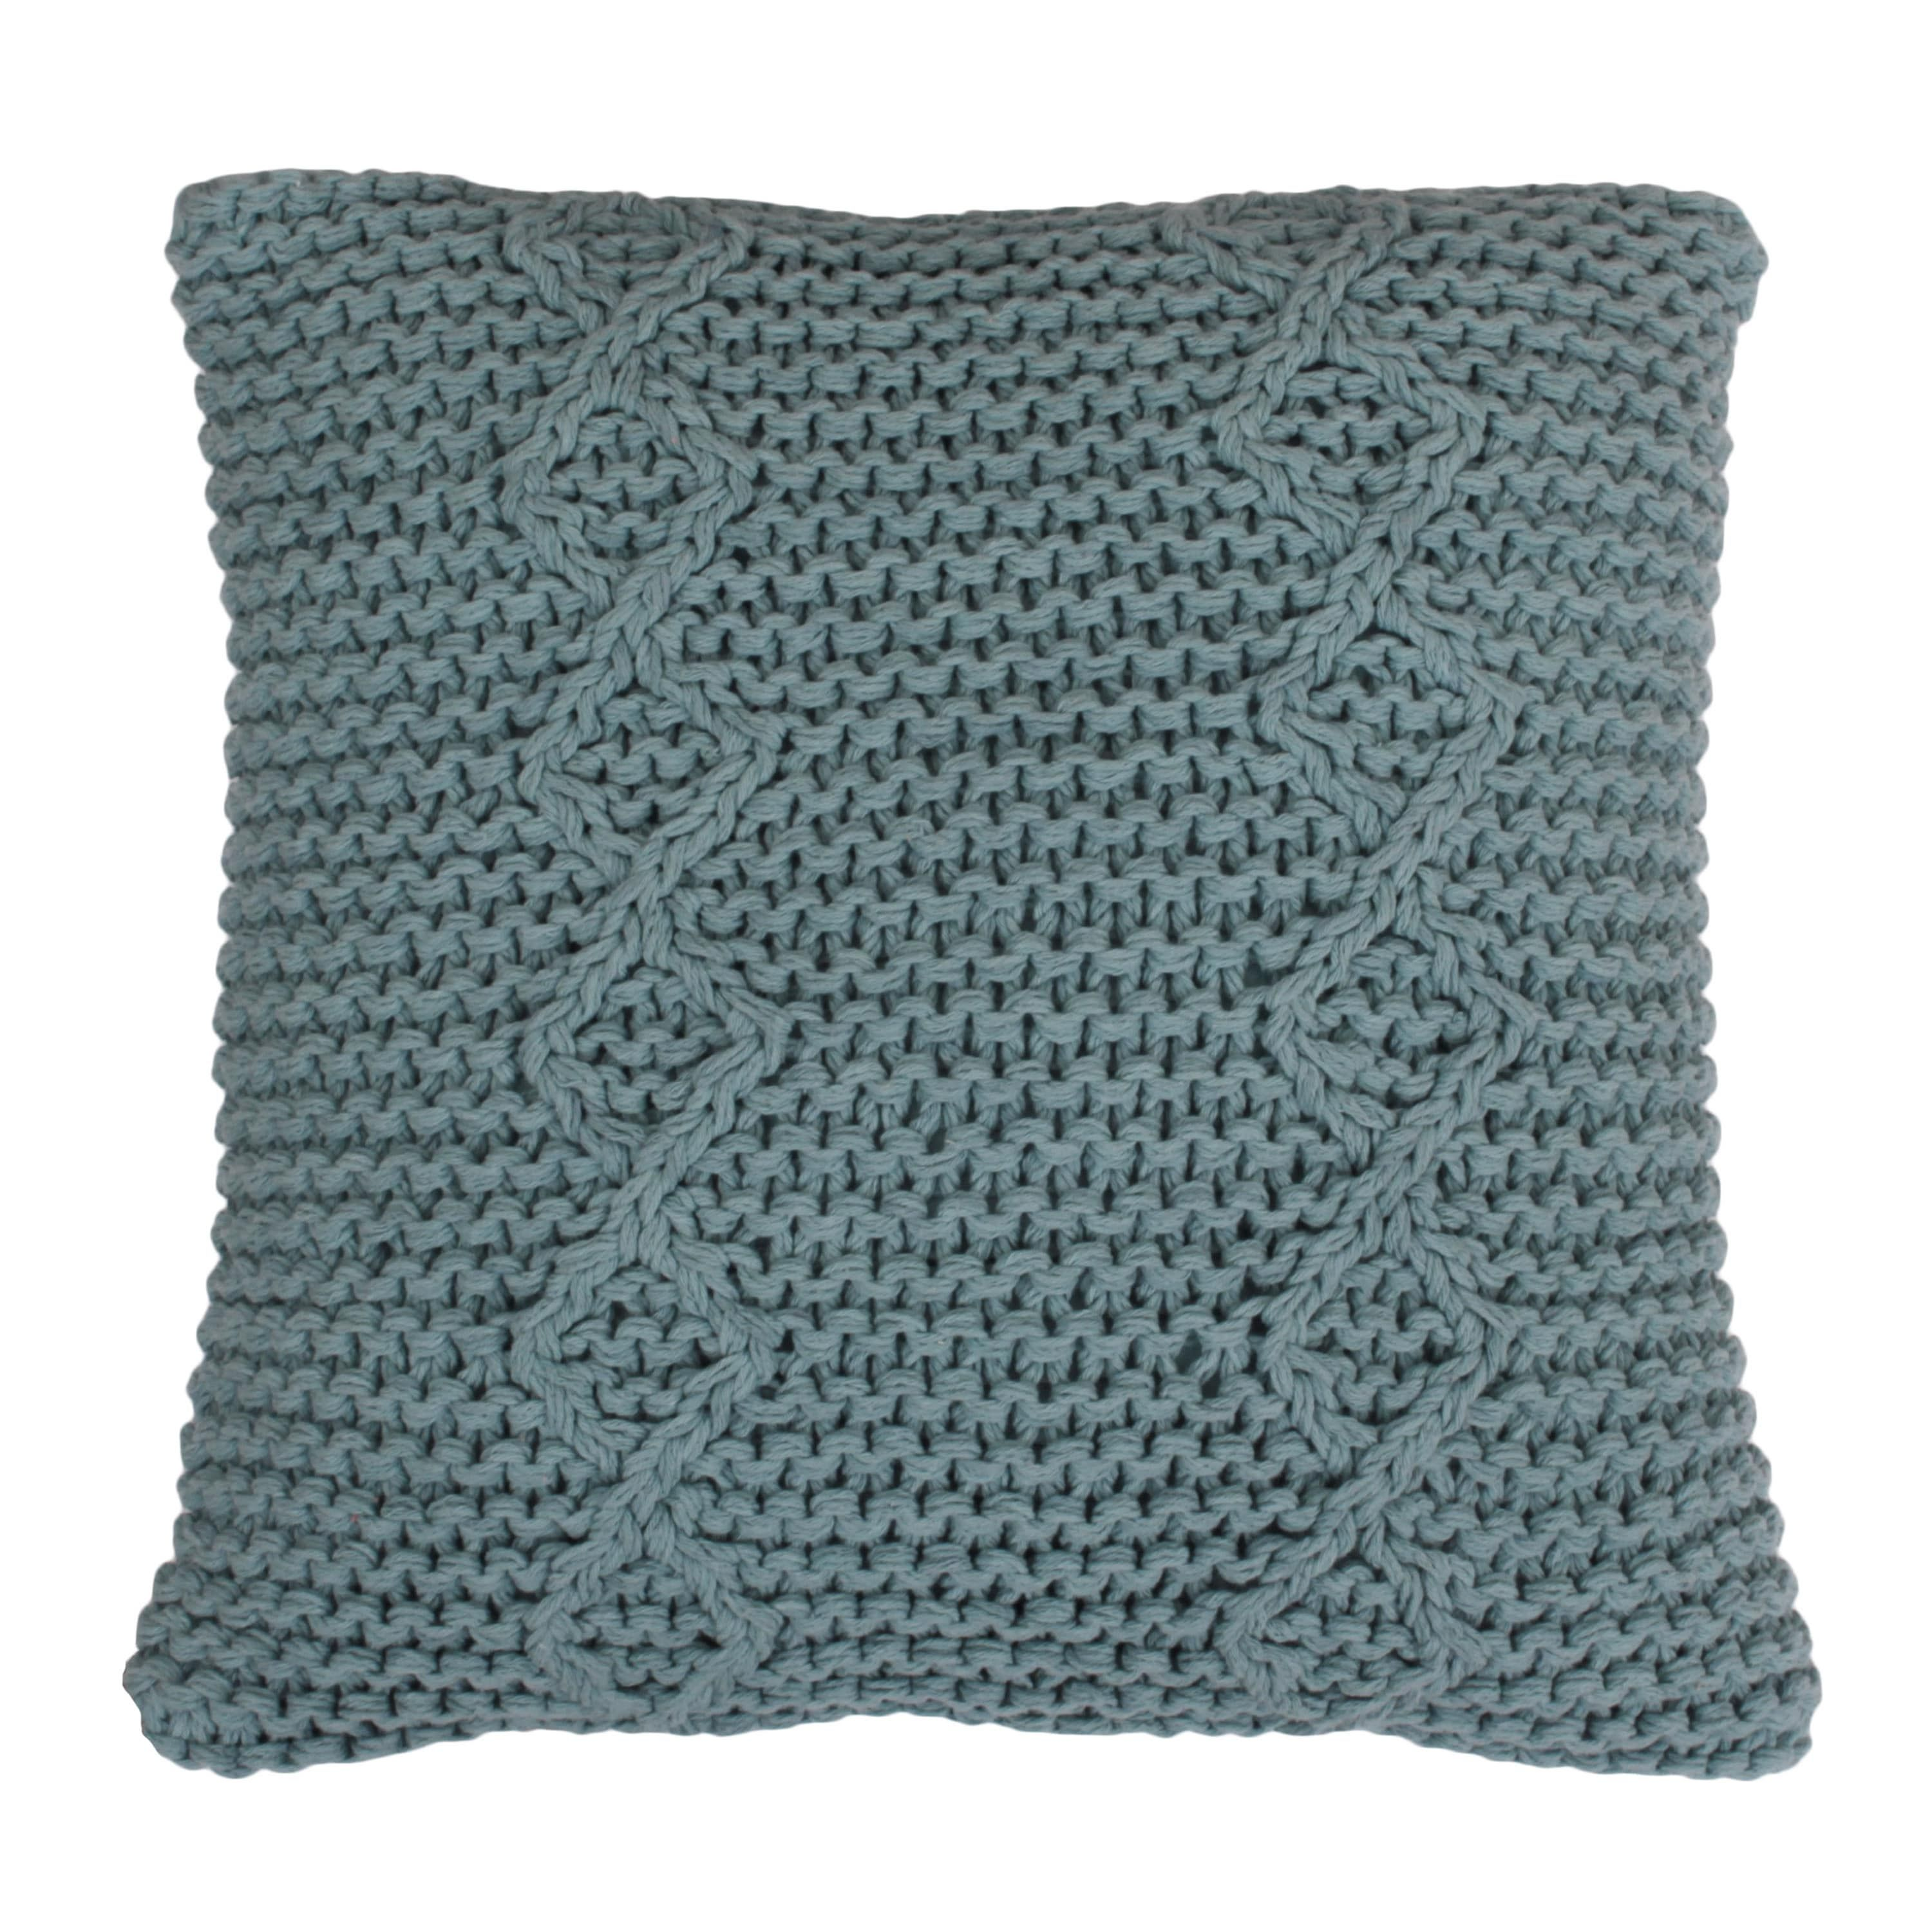 Thro logan knitted inch throw pillow pink size x cotton